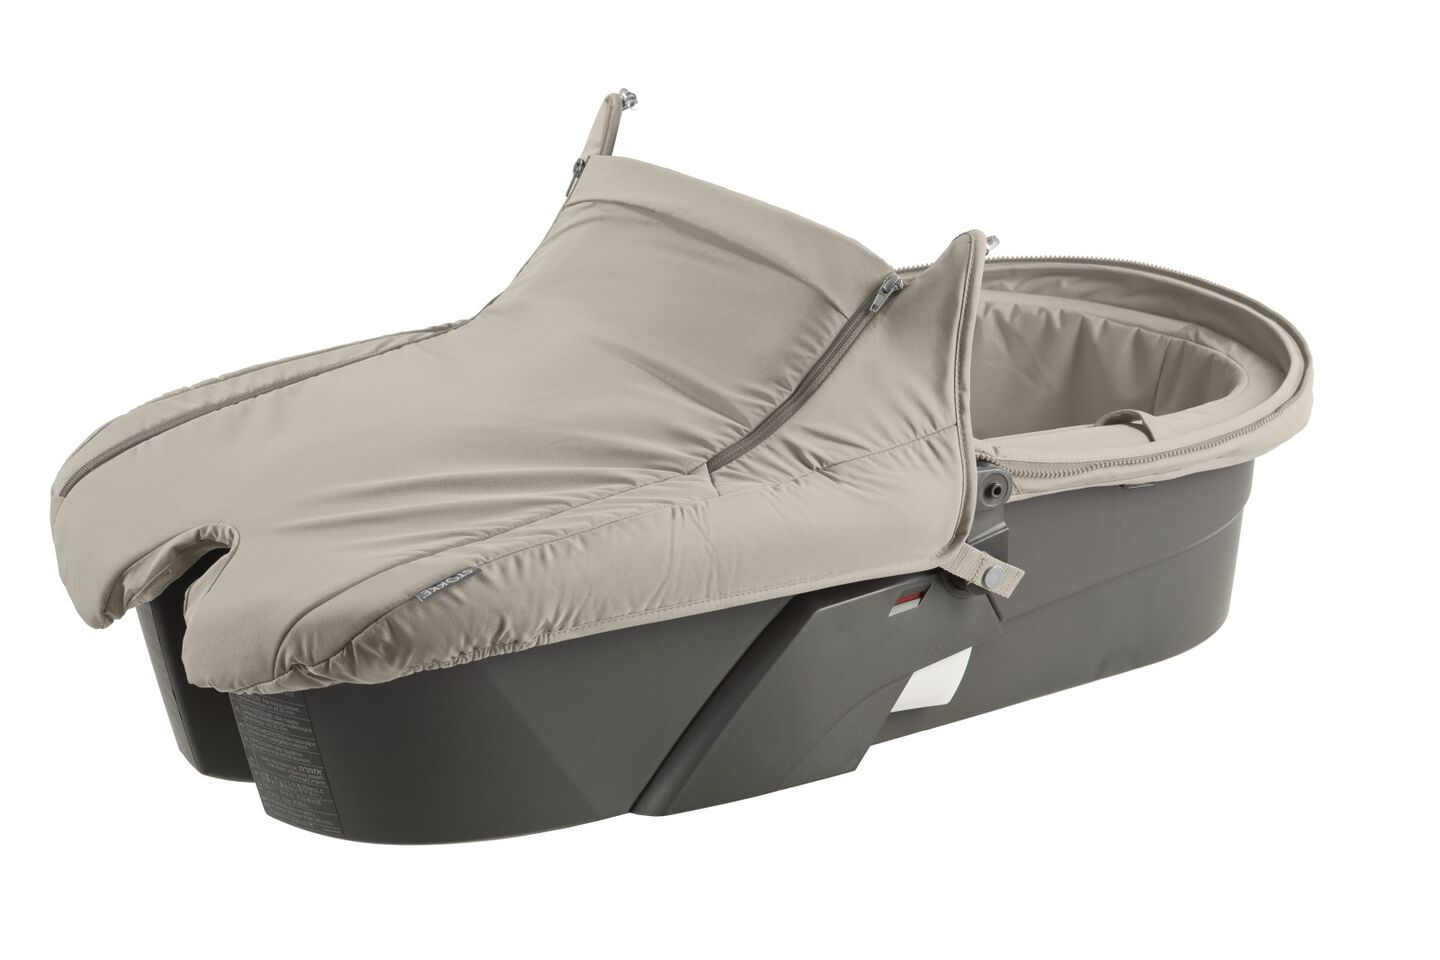 Carry Cot without Hood, Beige.